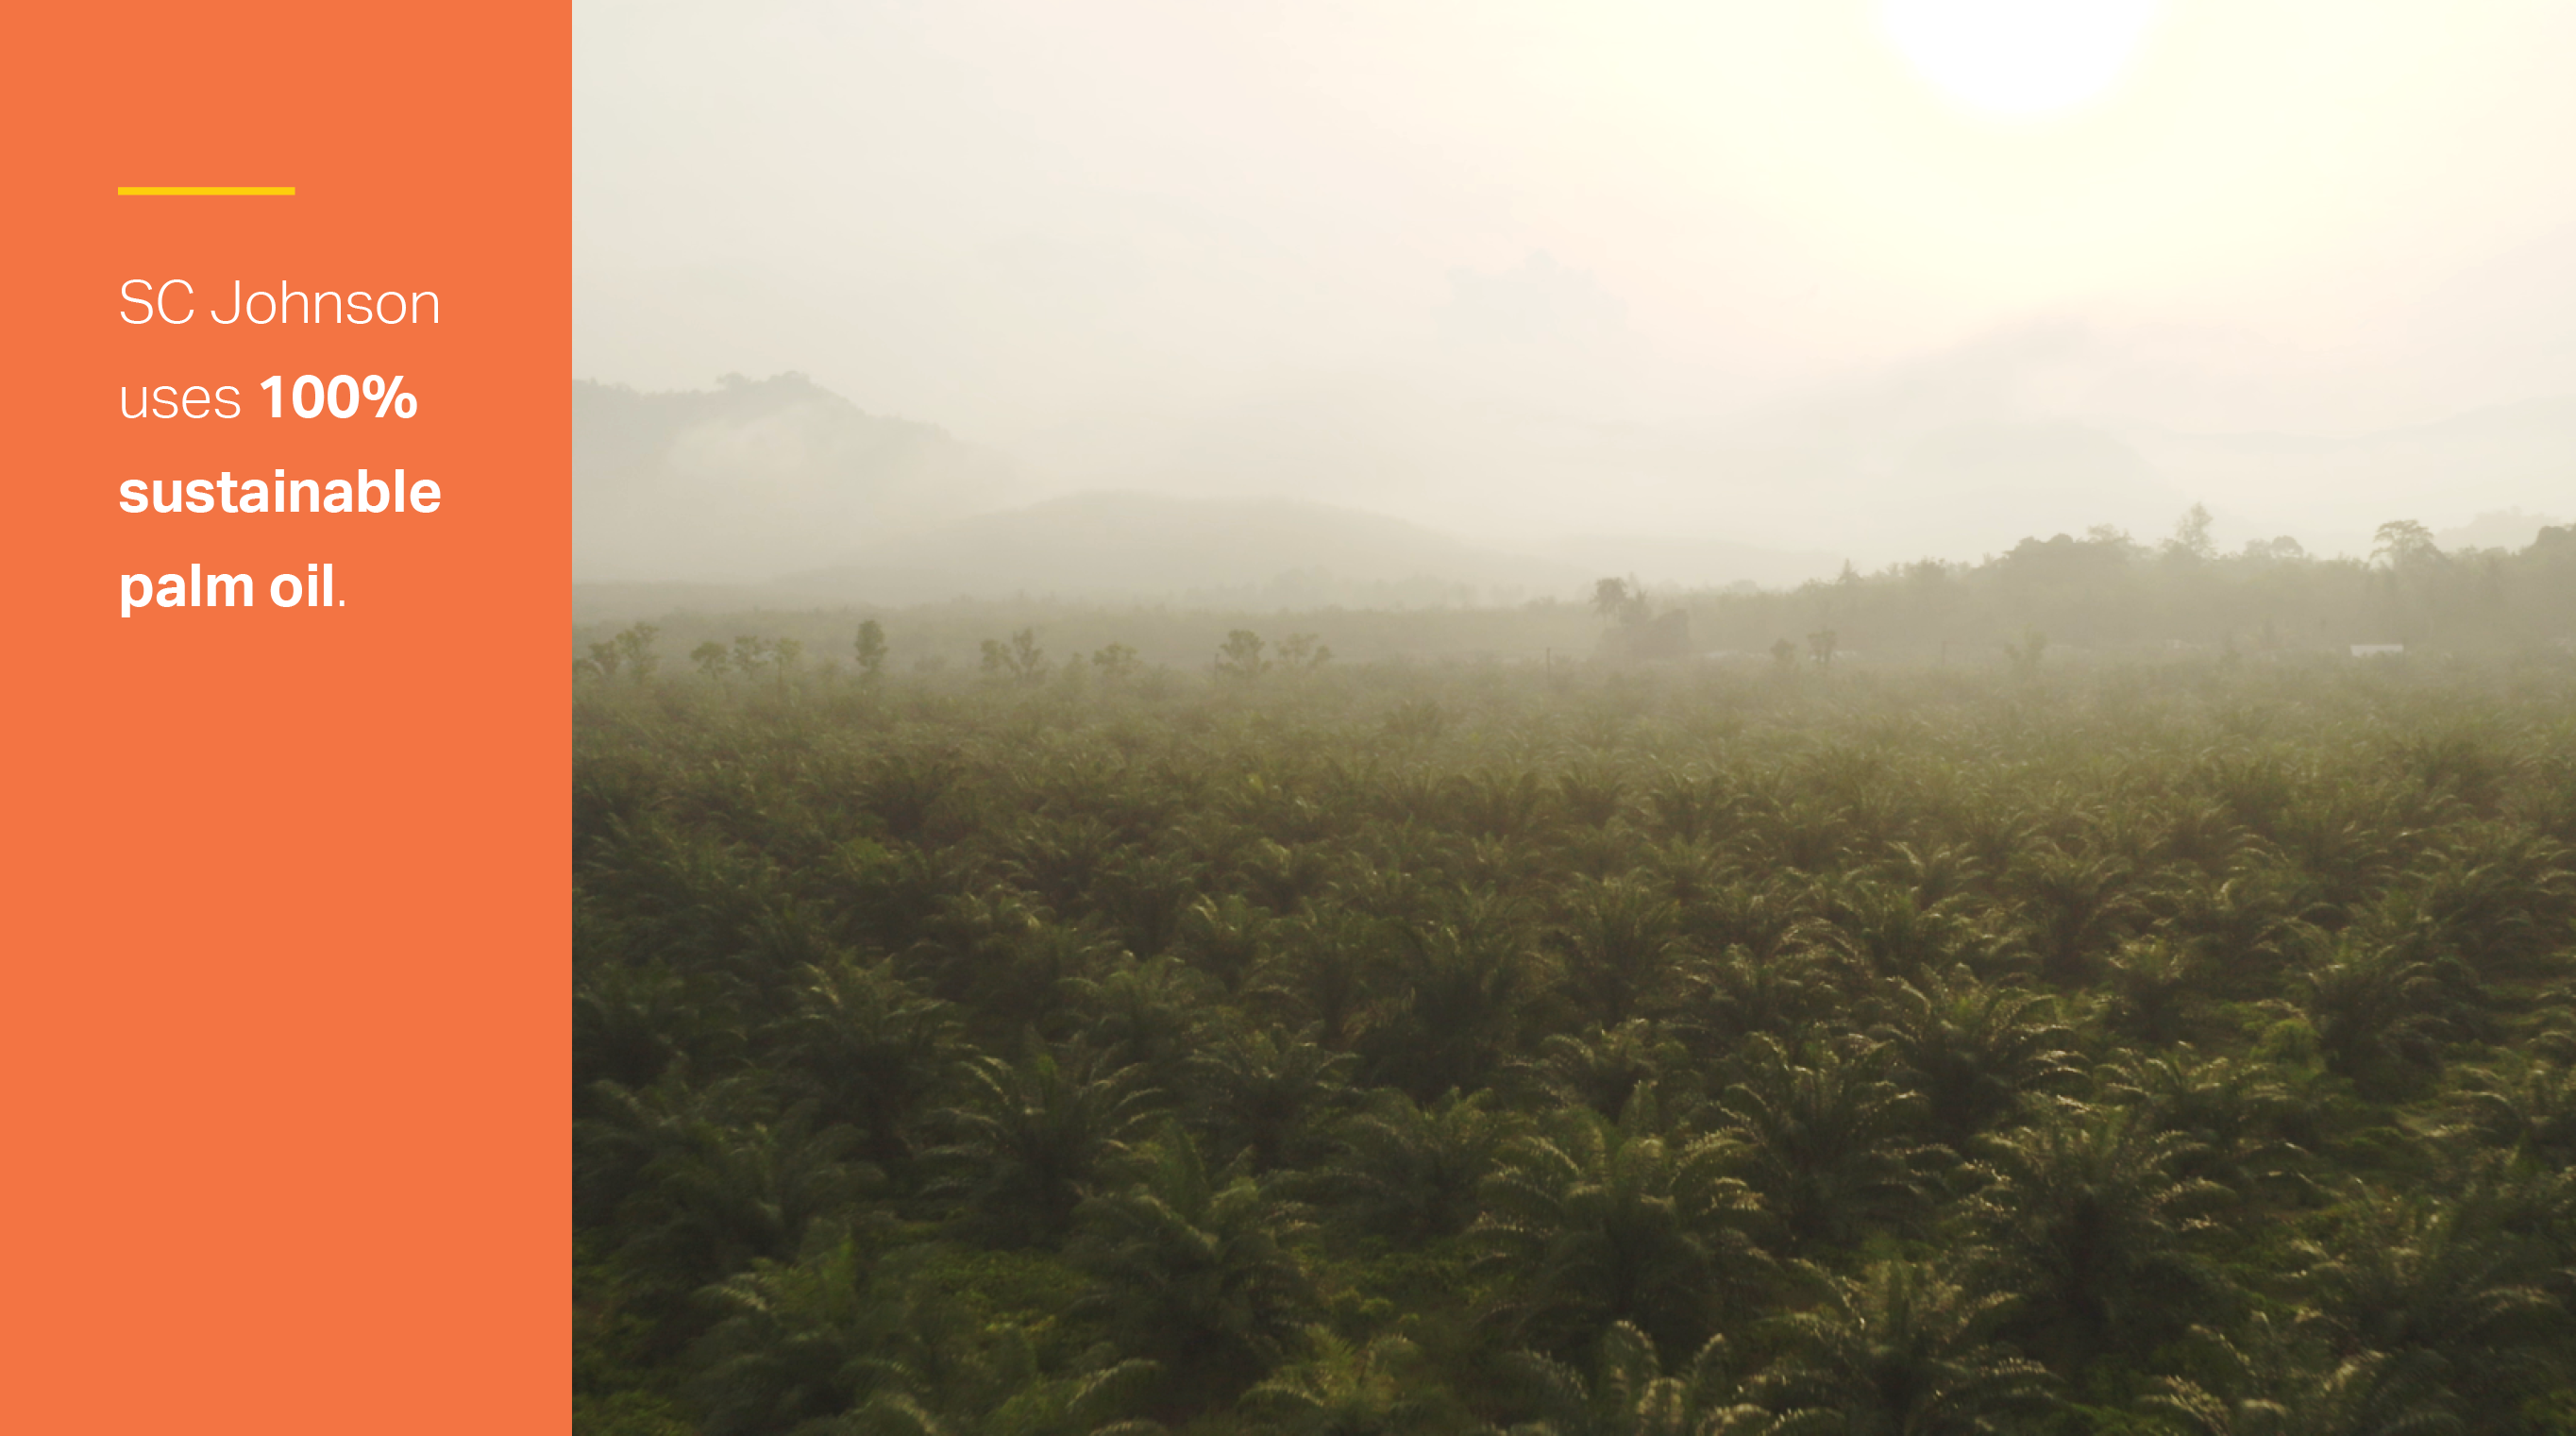 infographic tile: palm oil field. Text reads: SC Johnson uses 100% sustainable palm oil.